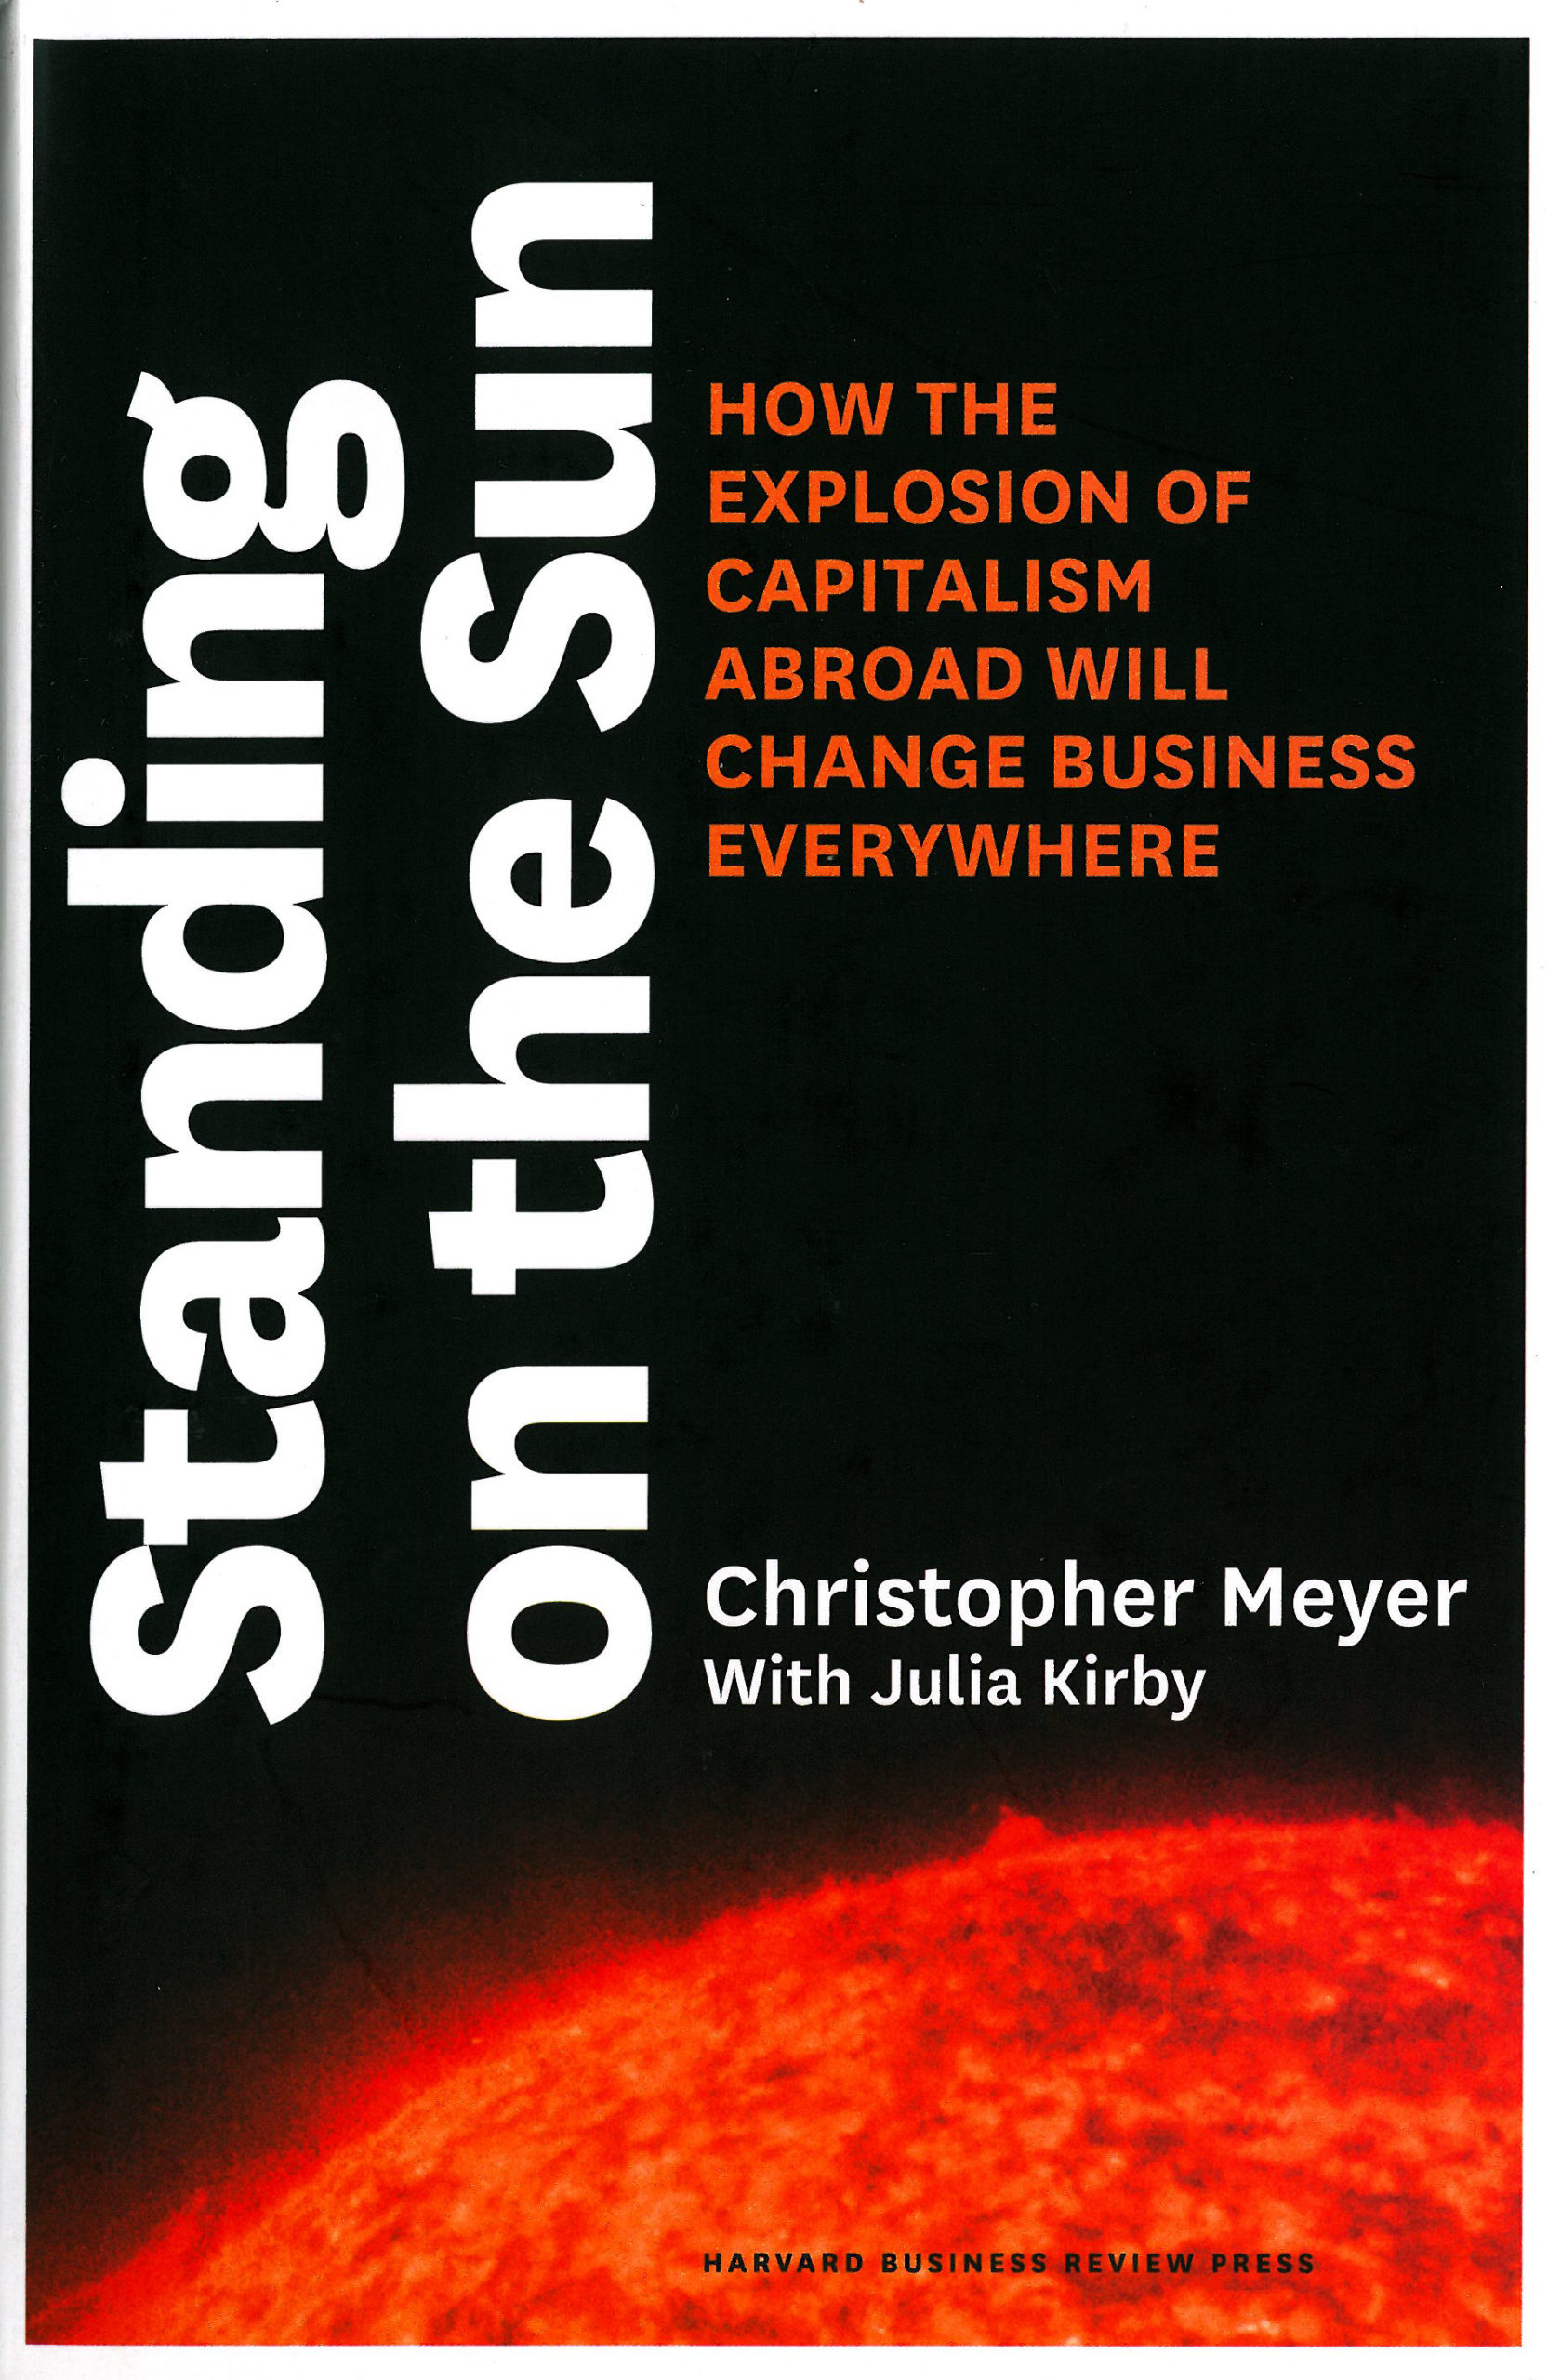 Christopher Meyer & Julia Kirby: Standing on the Sun. How the Explosion of Capitalism Abroad Will Change Business Everywhere. Harvard Business Review 2012, 352 s.